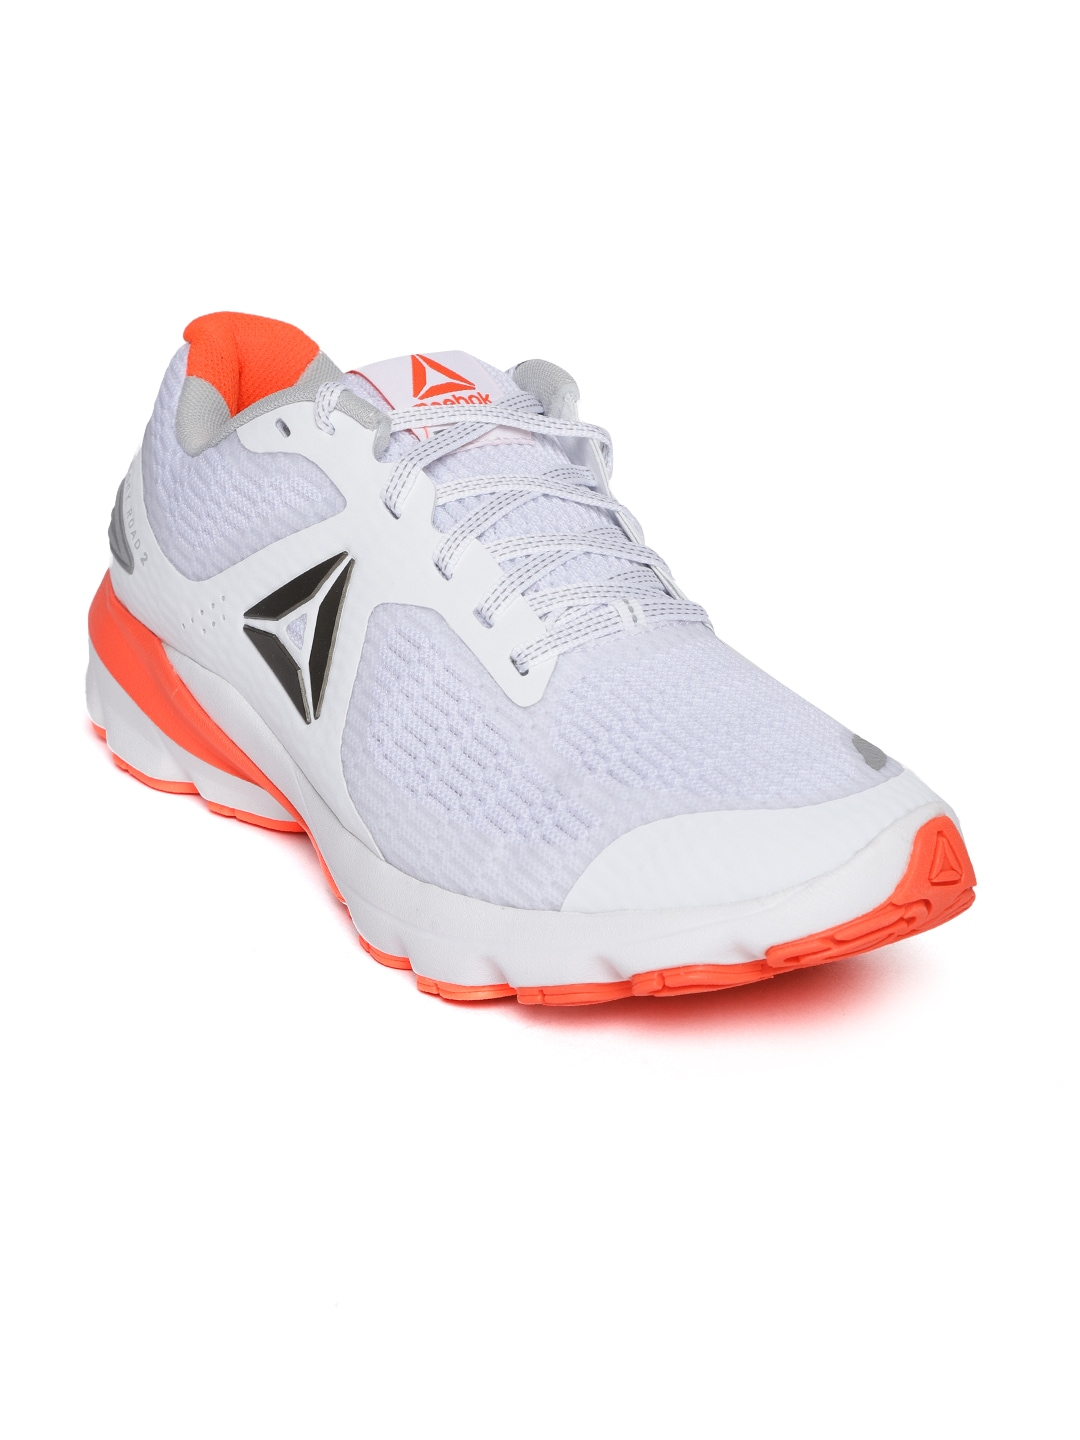 dafef8d9ce393 Reebok Sports Shoes - Buy Reebok Sports Shoes in India